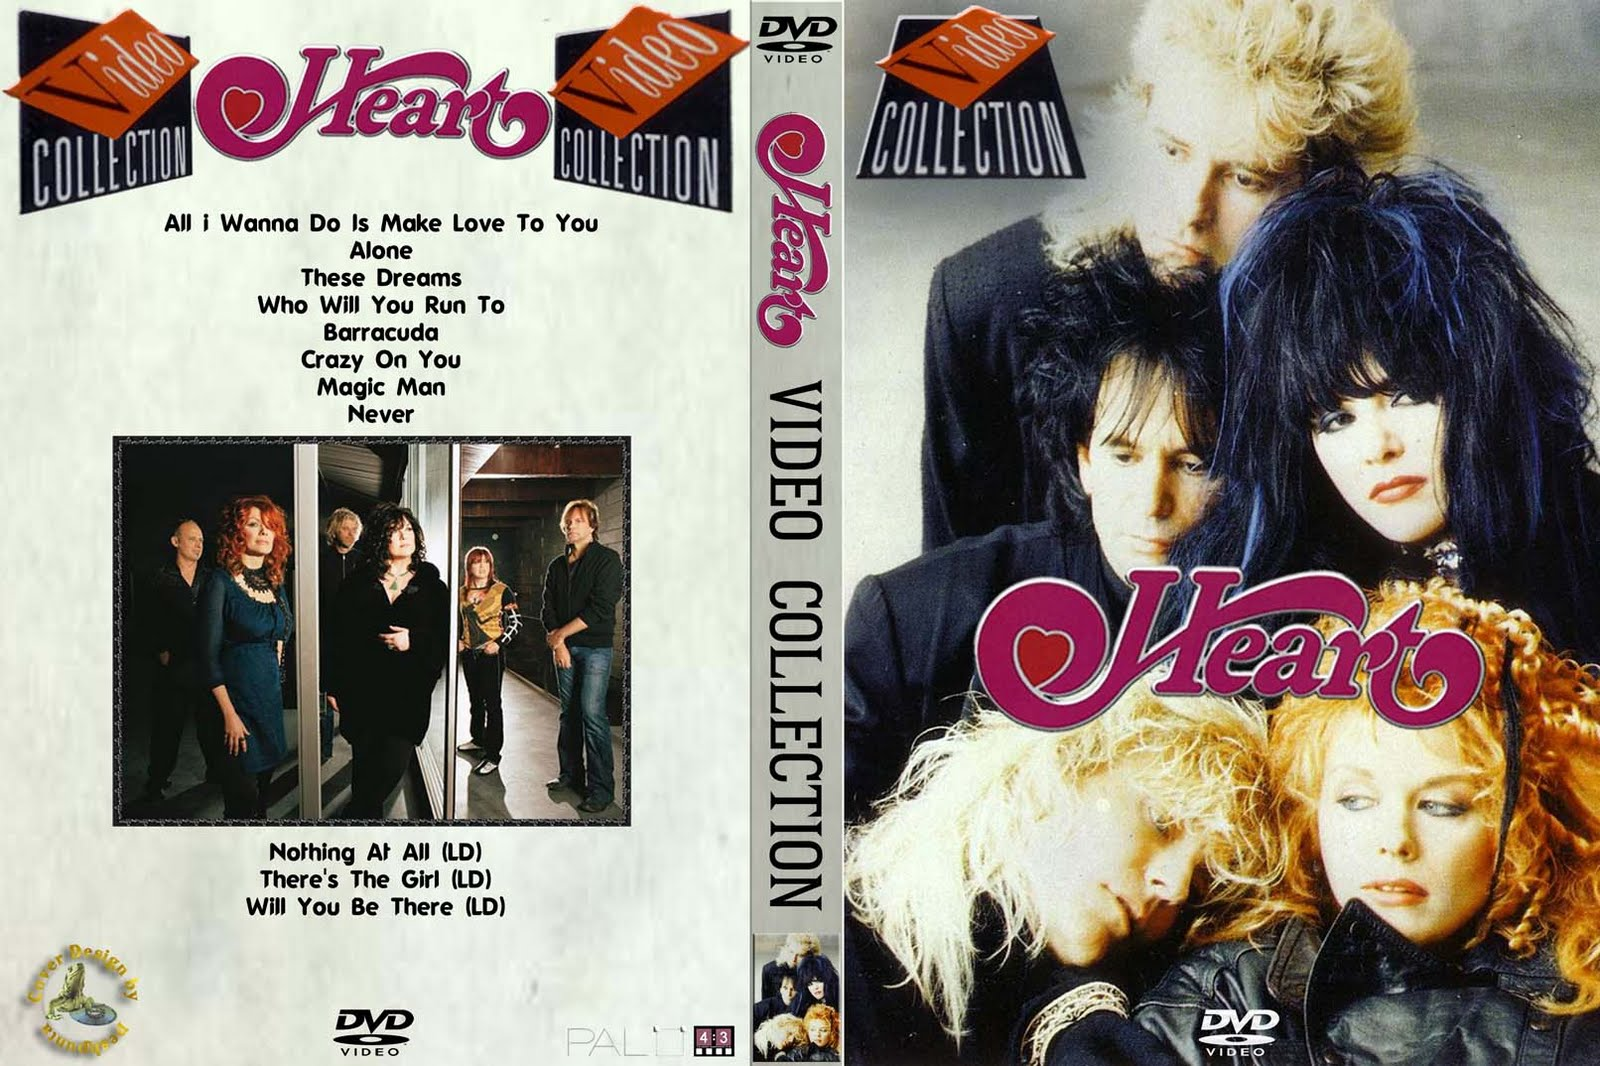 Heart - Video Collection (2oo9) (DVD5/PAL/pro-shot)